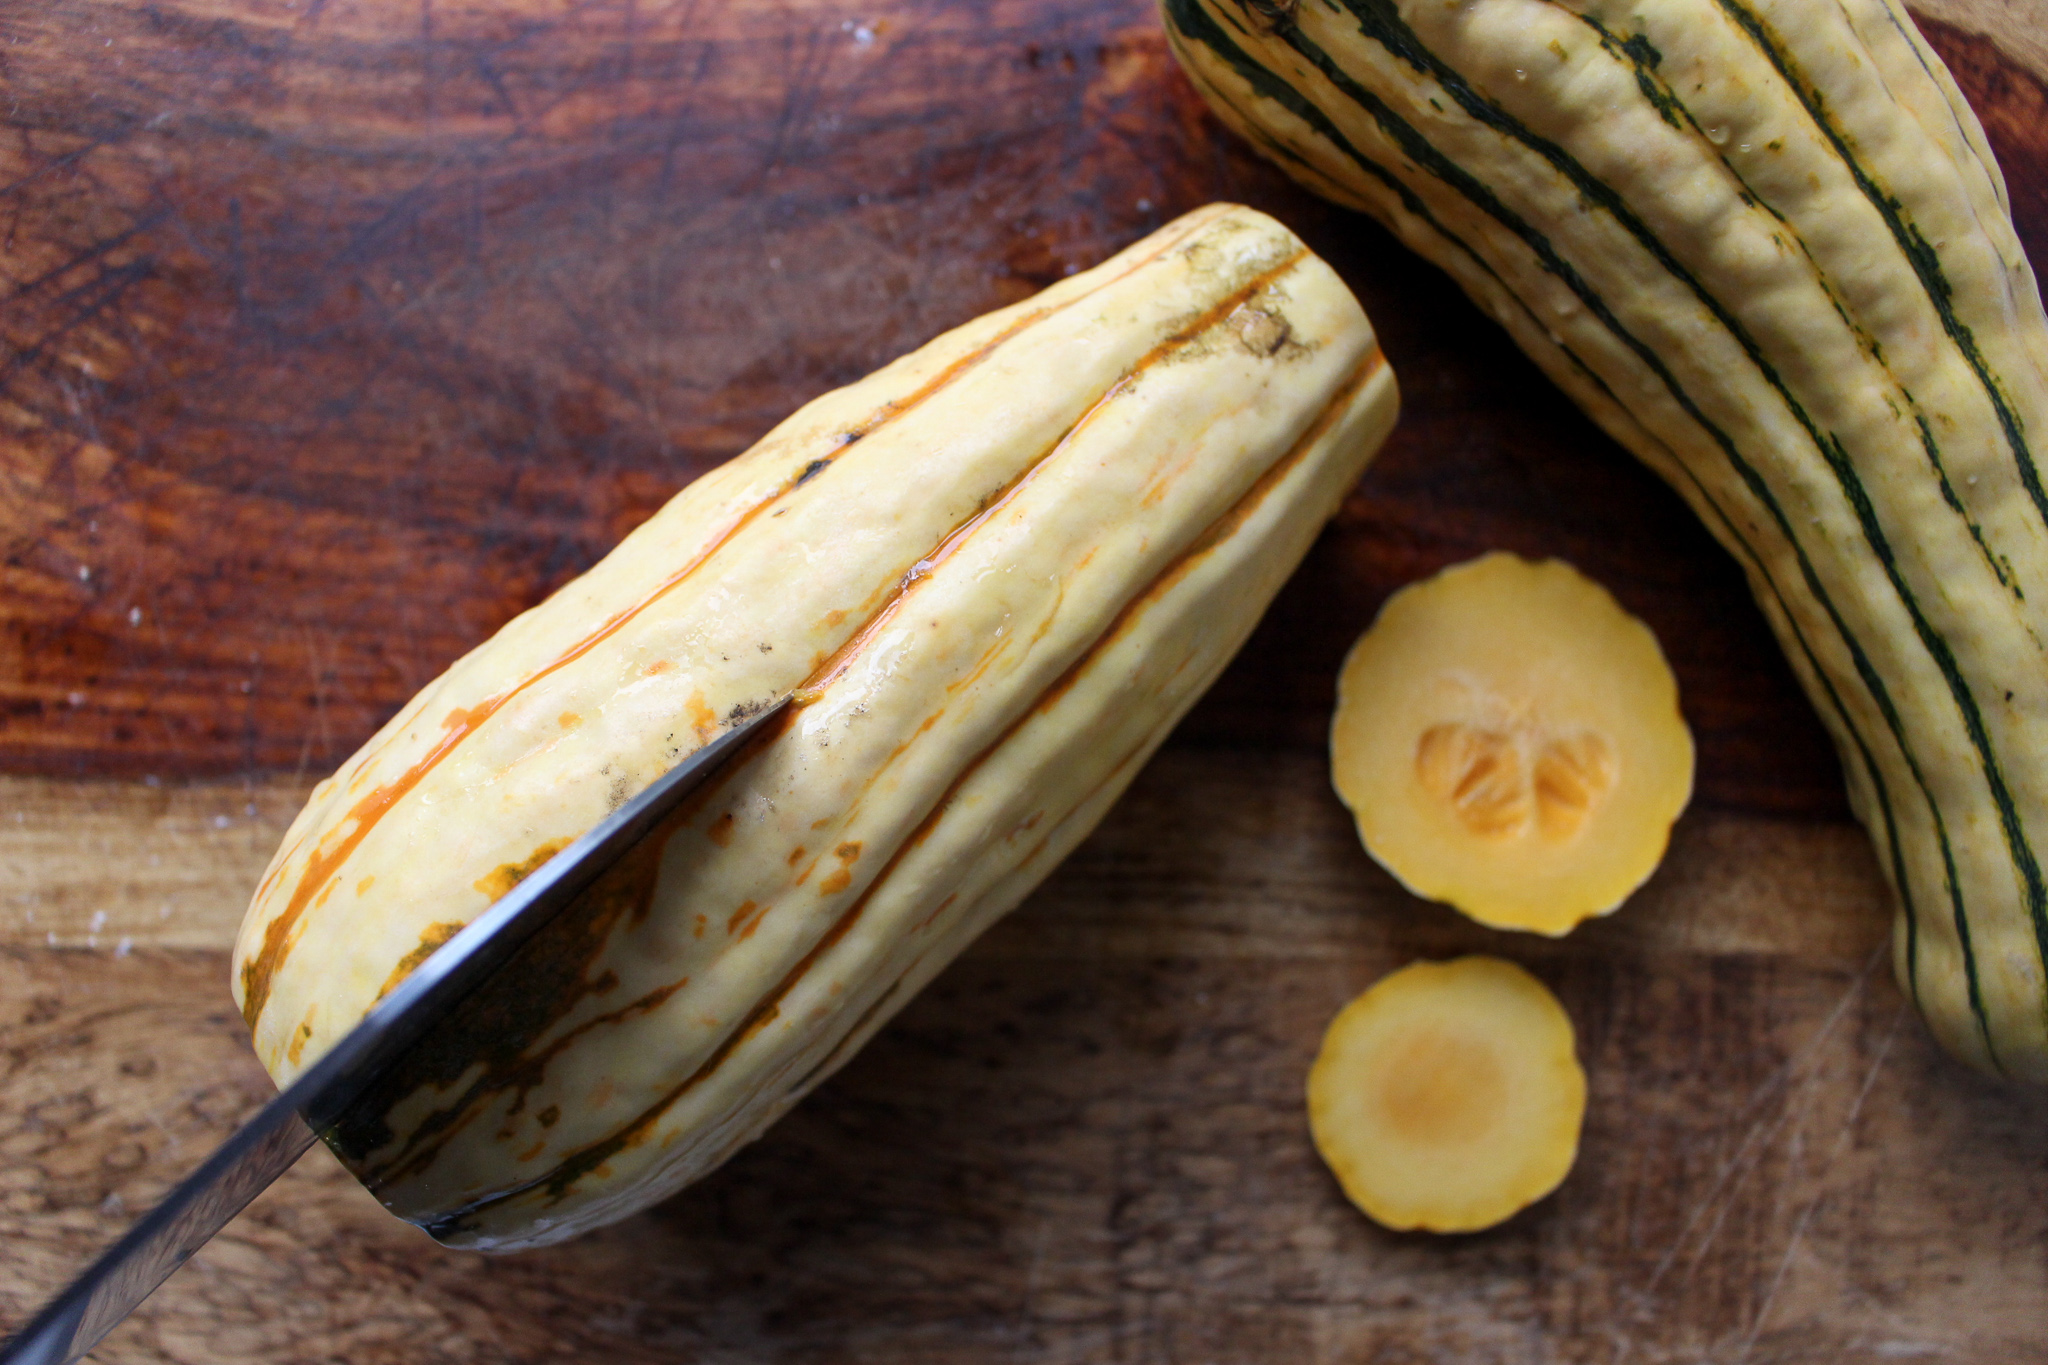 Delicata Squash is easy to prepare because it doesn't require peeling. #meandthemoose #delicatasquash #healthycaesar #salad #fallsalad #thanksgivingsalad #thanksgivingrecipes